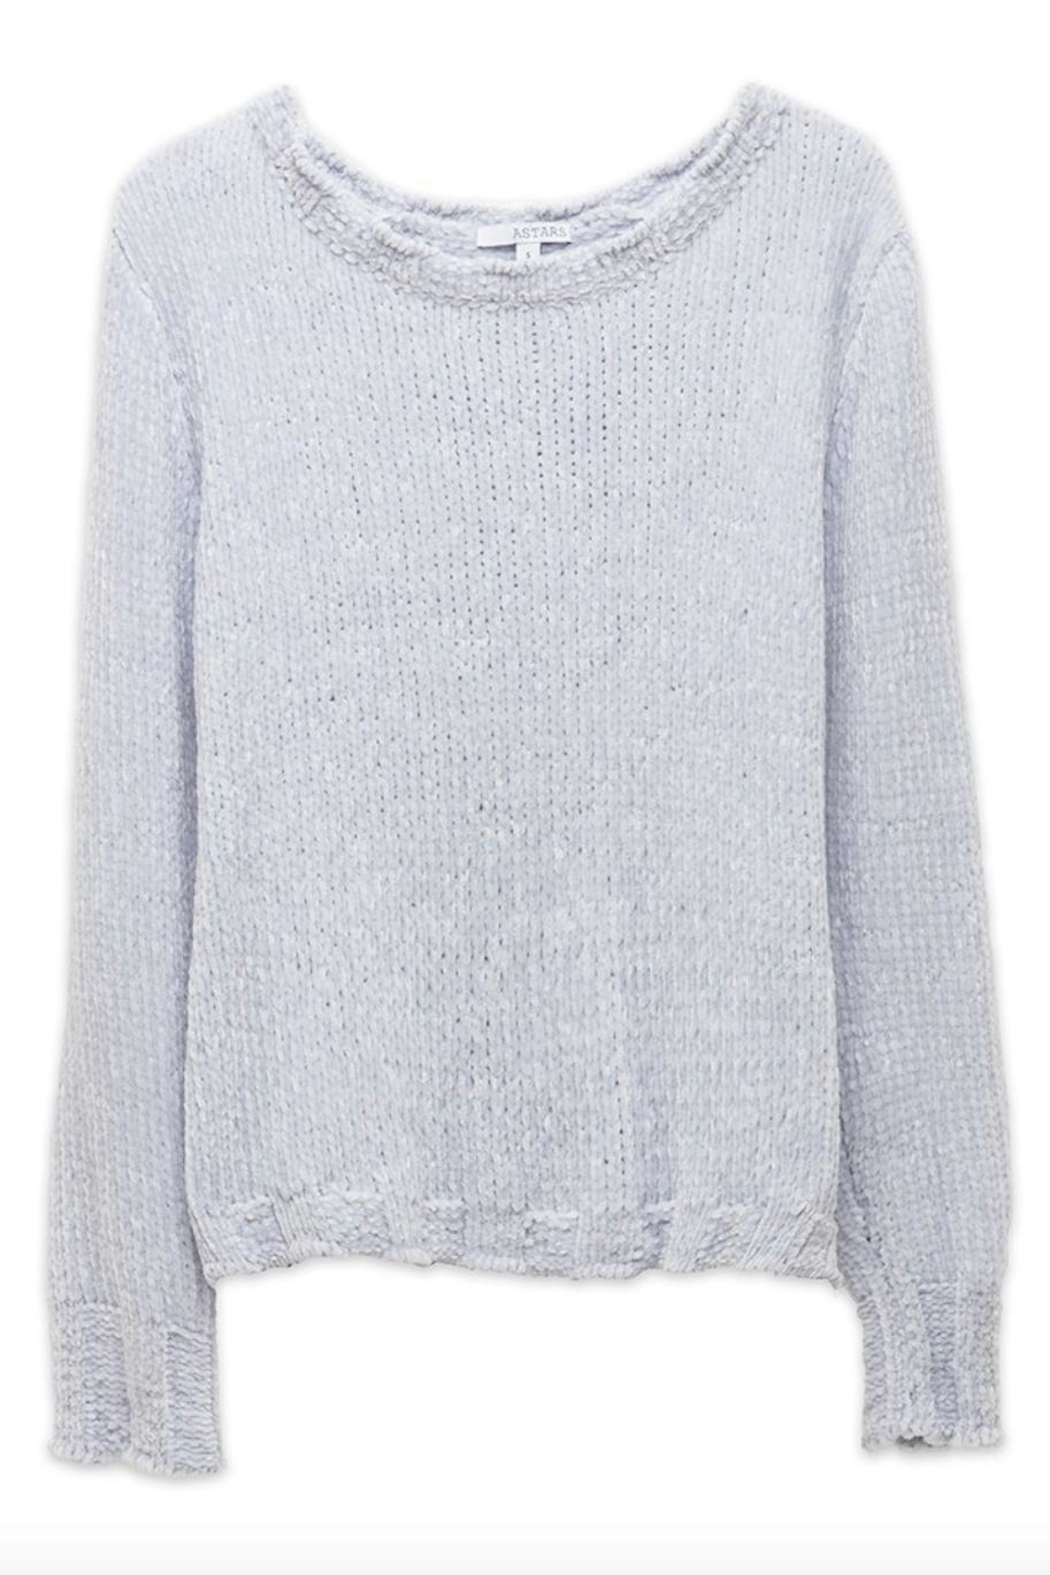 Astars Kai Crop Pullover - Side Cropped Image